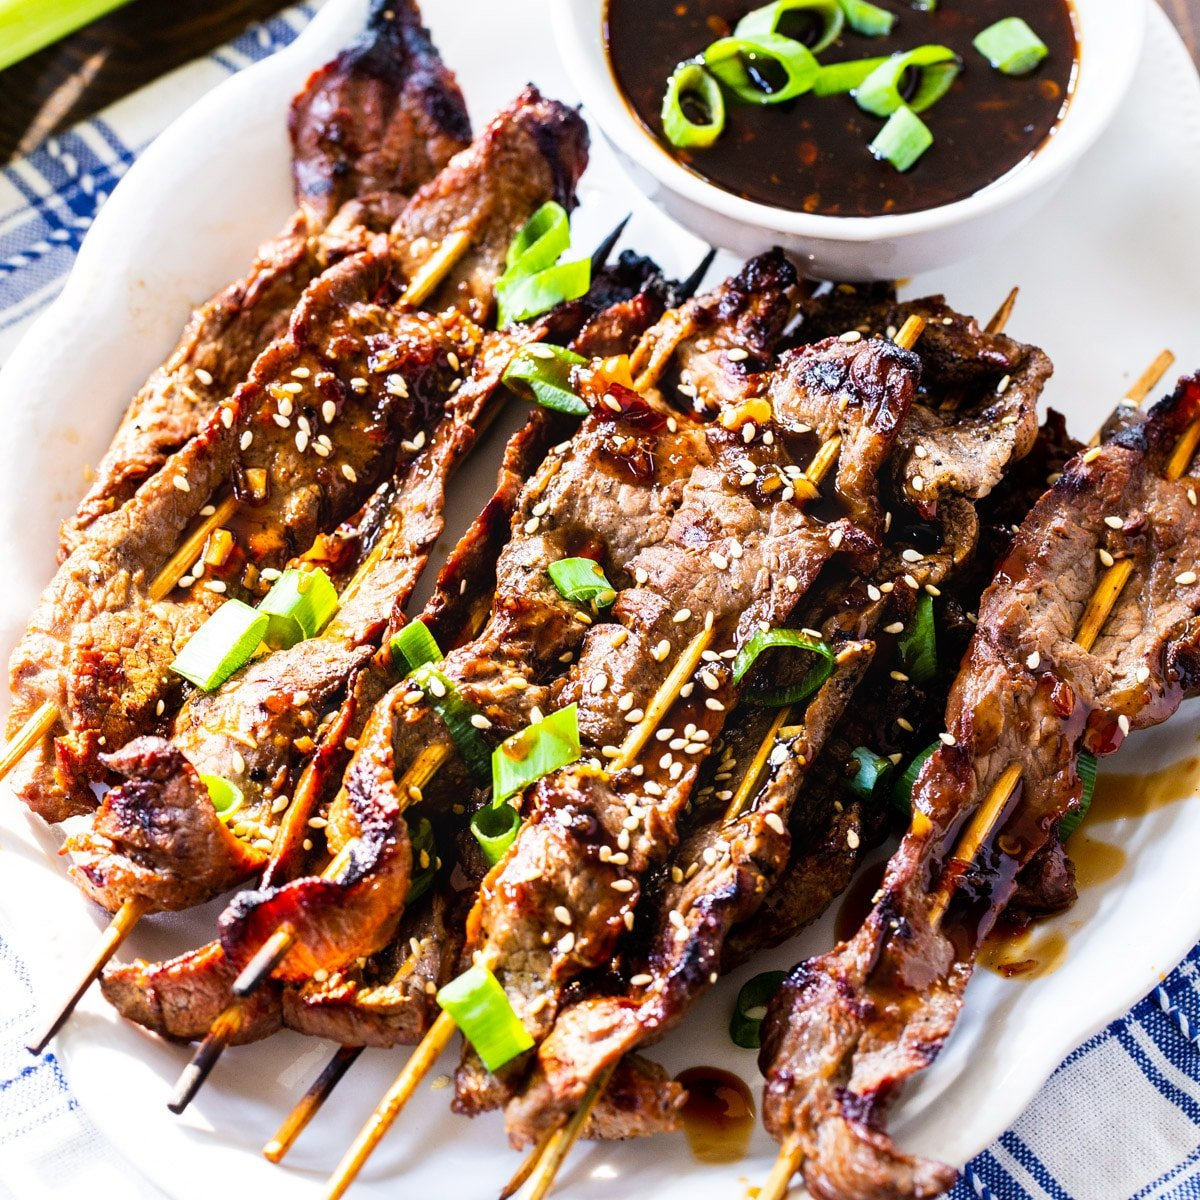 Marinated Steak Skewers with Korean BBQ Sauce on a white serving plate.